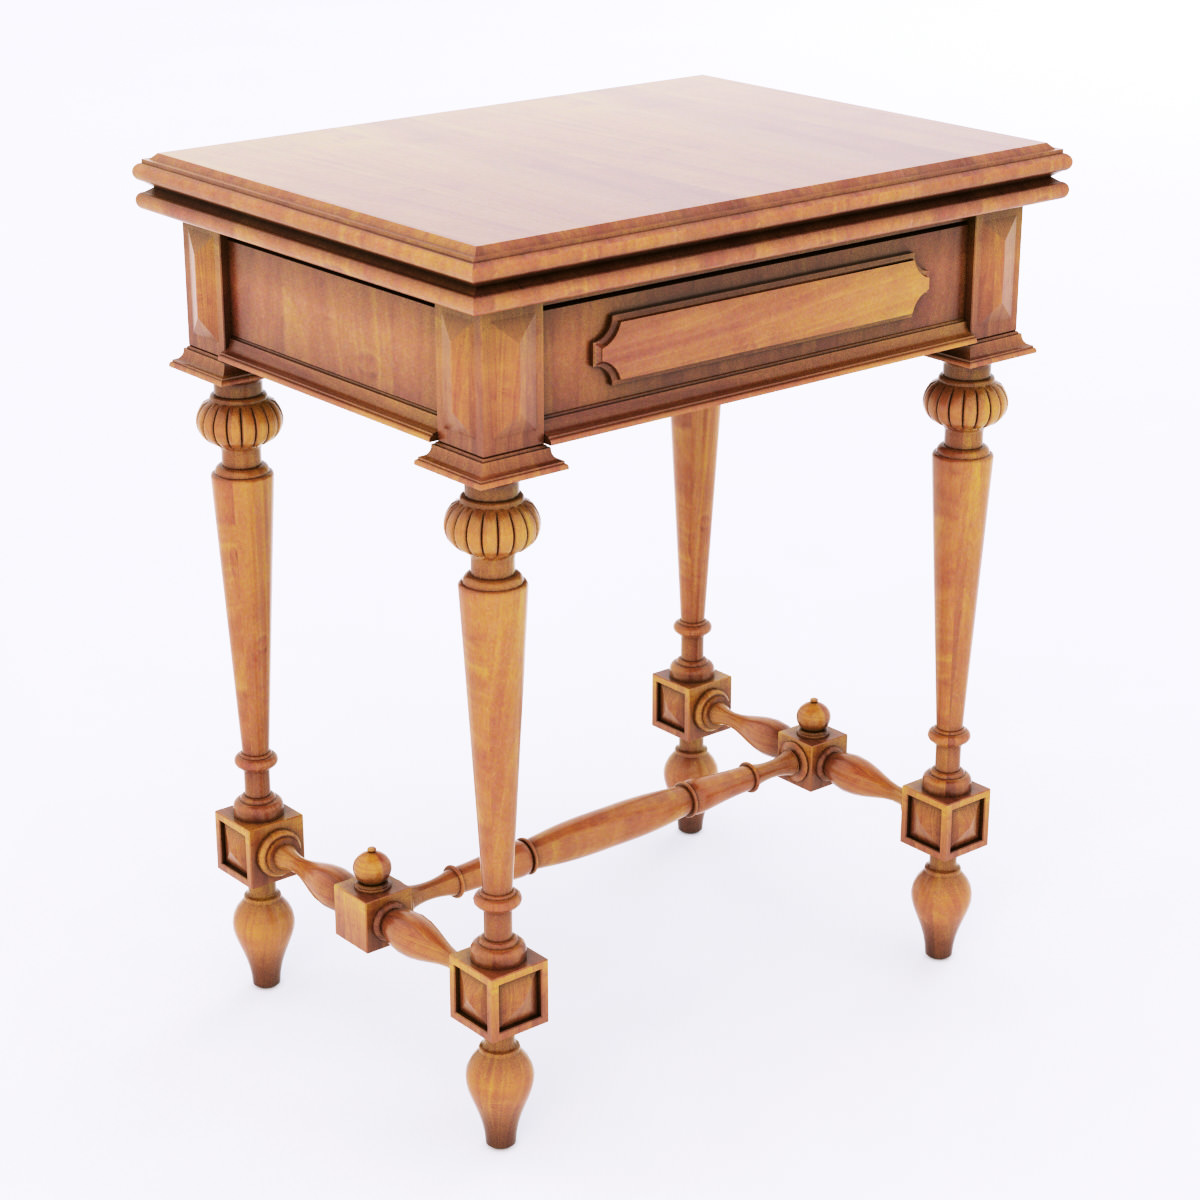 Antique table for Table design 3d model